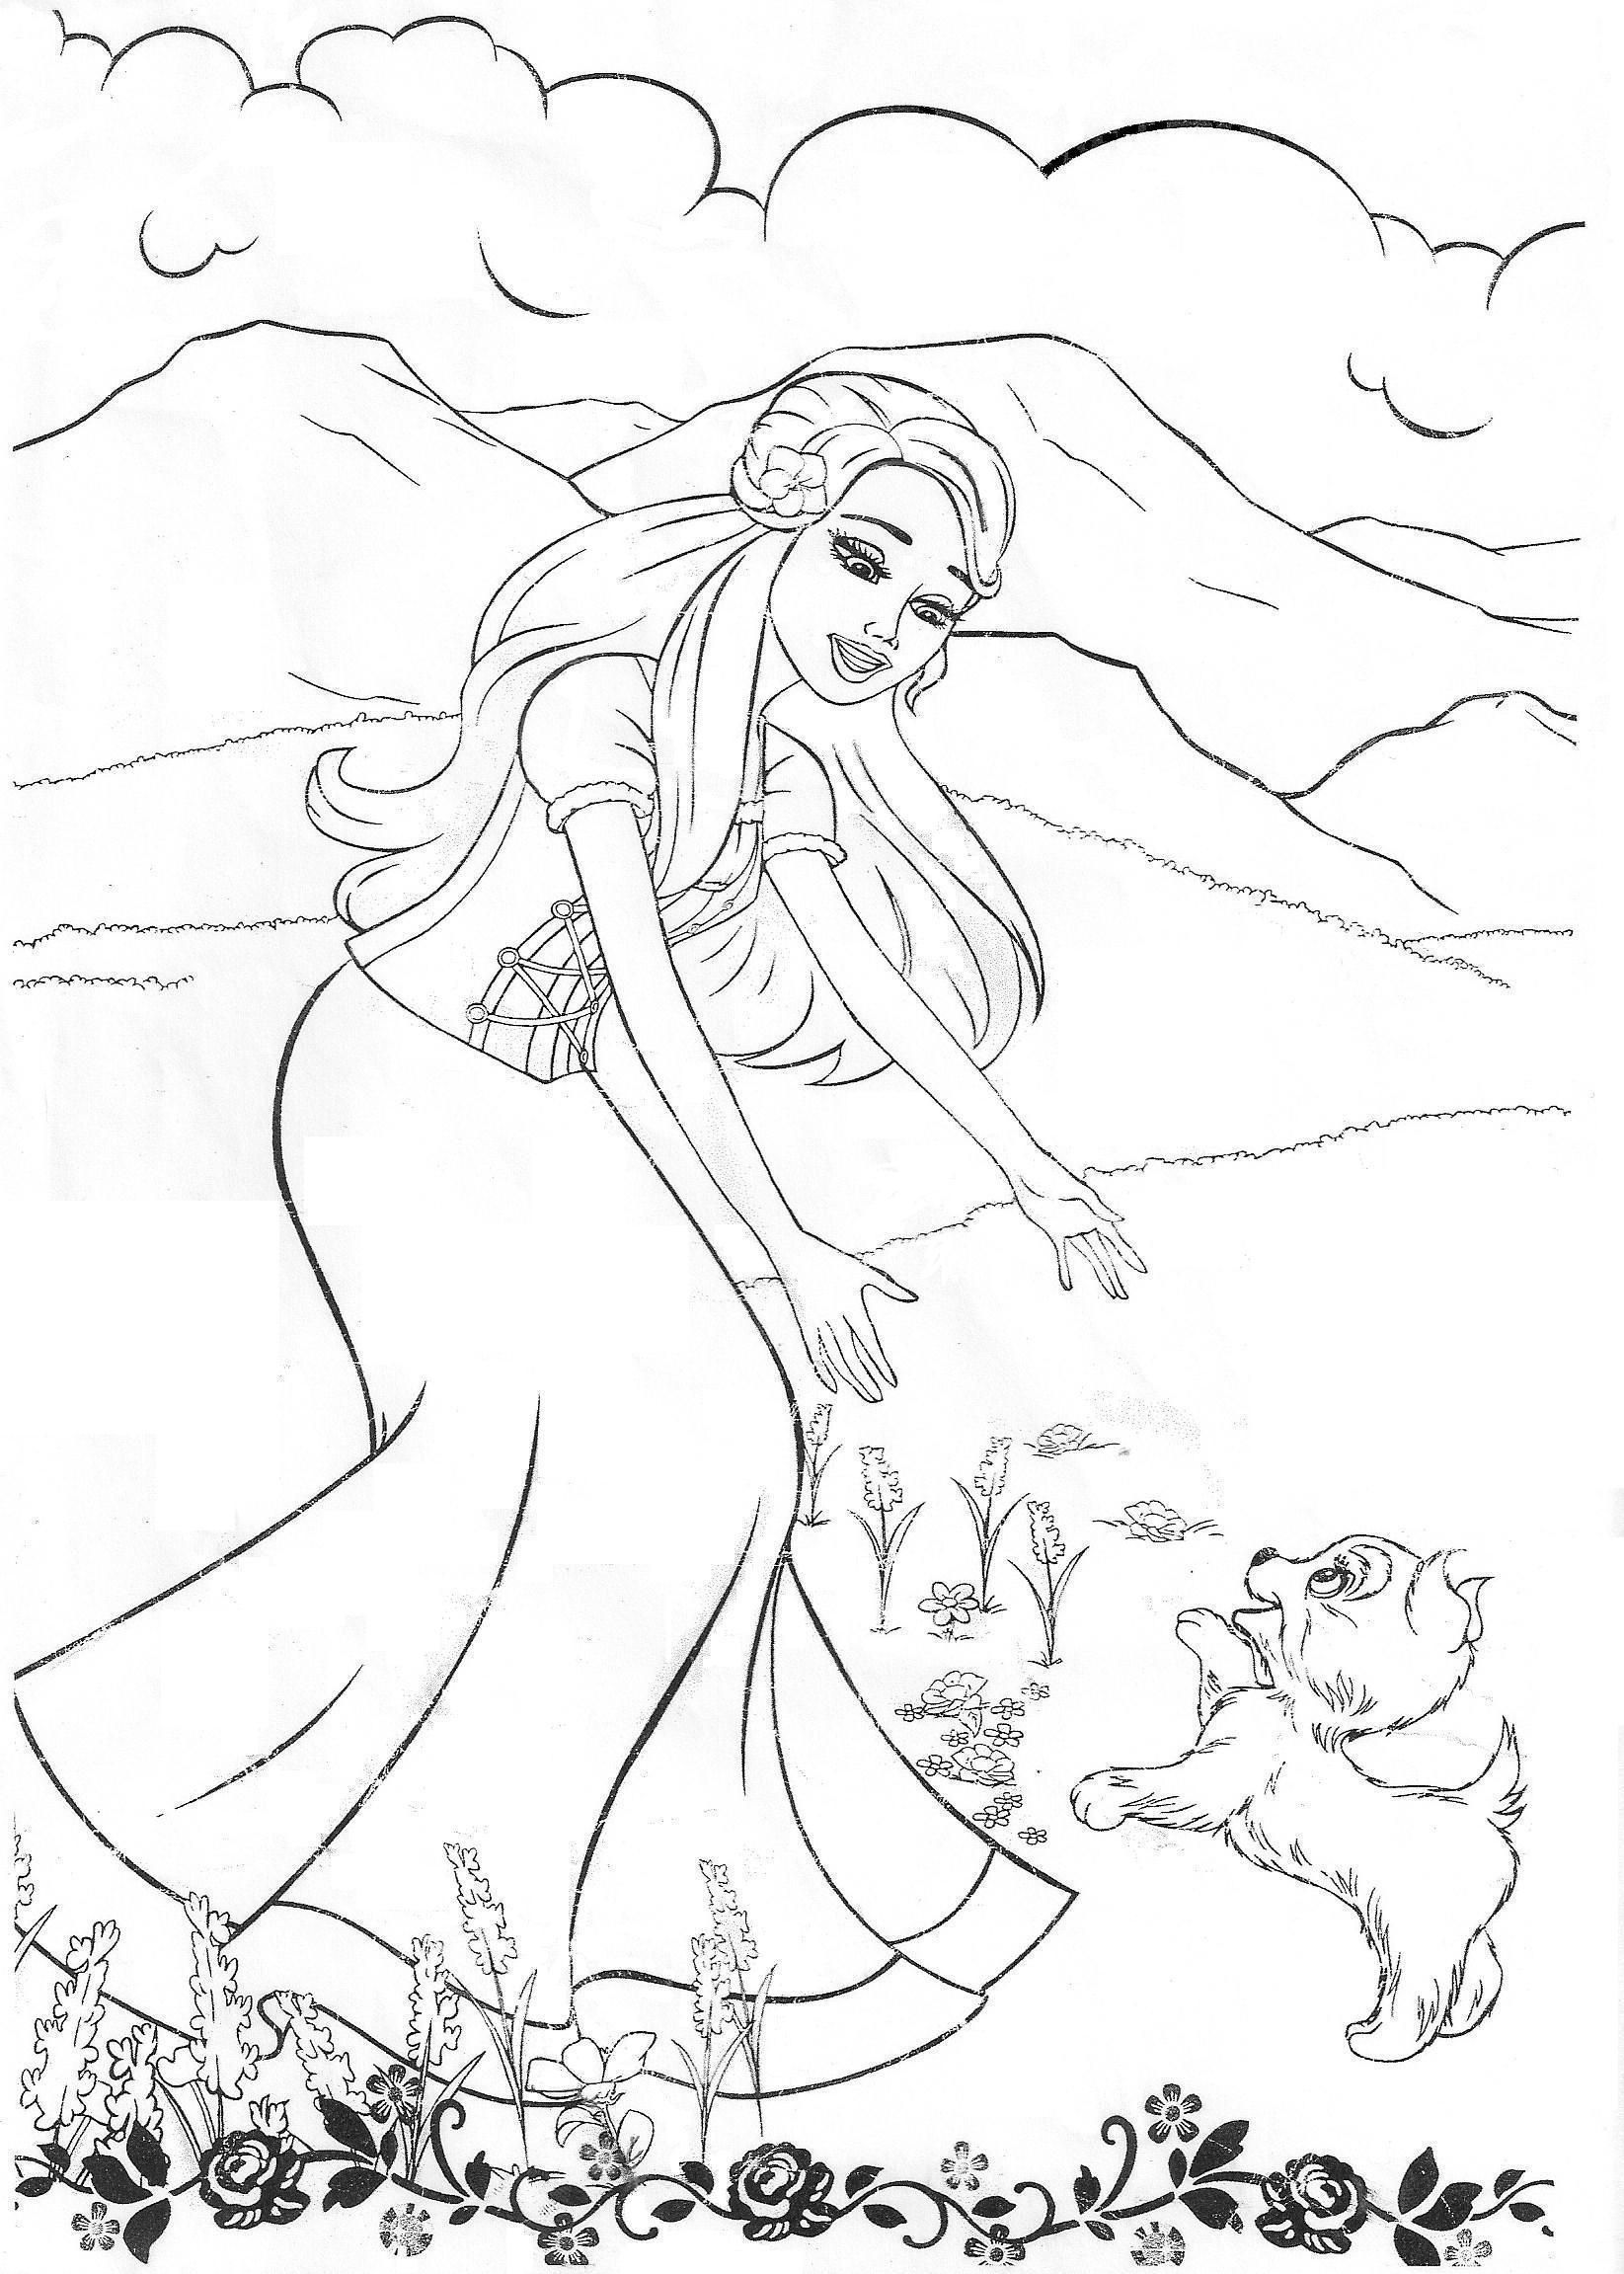 Barbie coloring printouts free - Barbie Coloring Pages Barbie Movies Photo 19453603 Fanpop